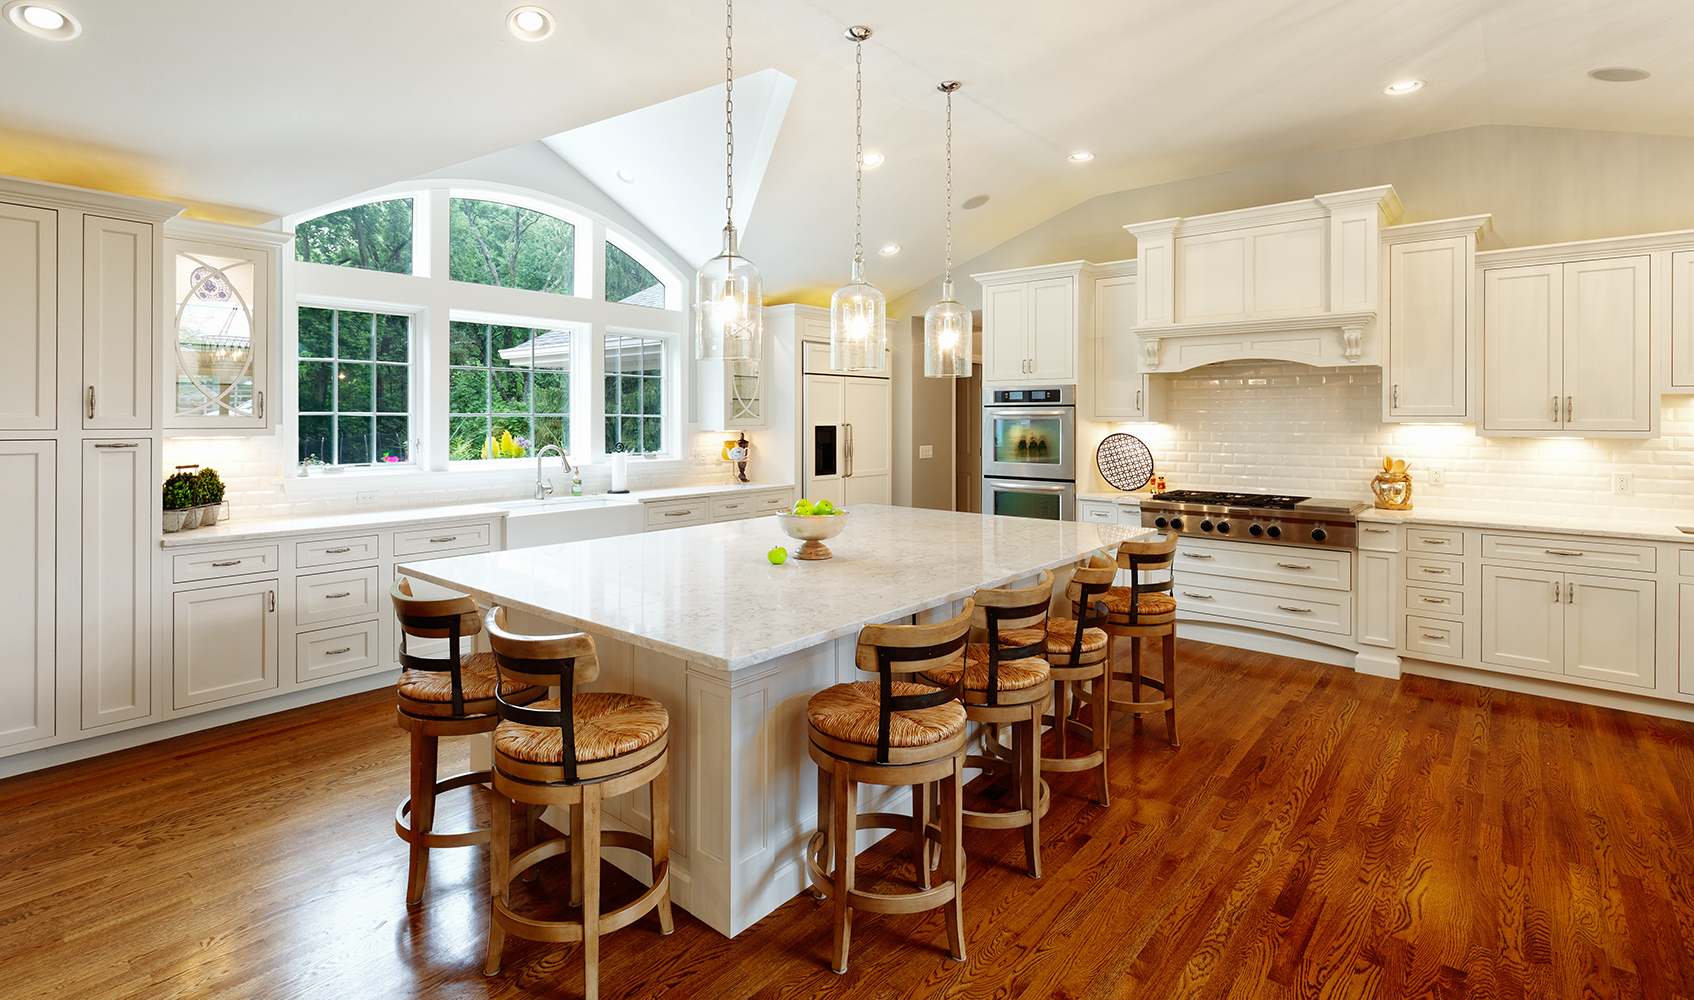 Kitchen by Wilcox Architecture in East Hyde Park